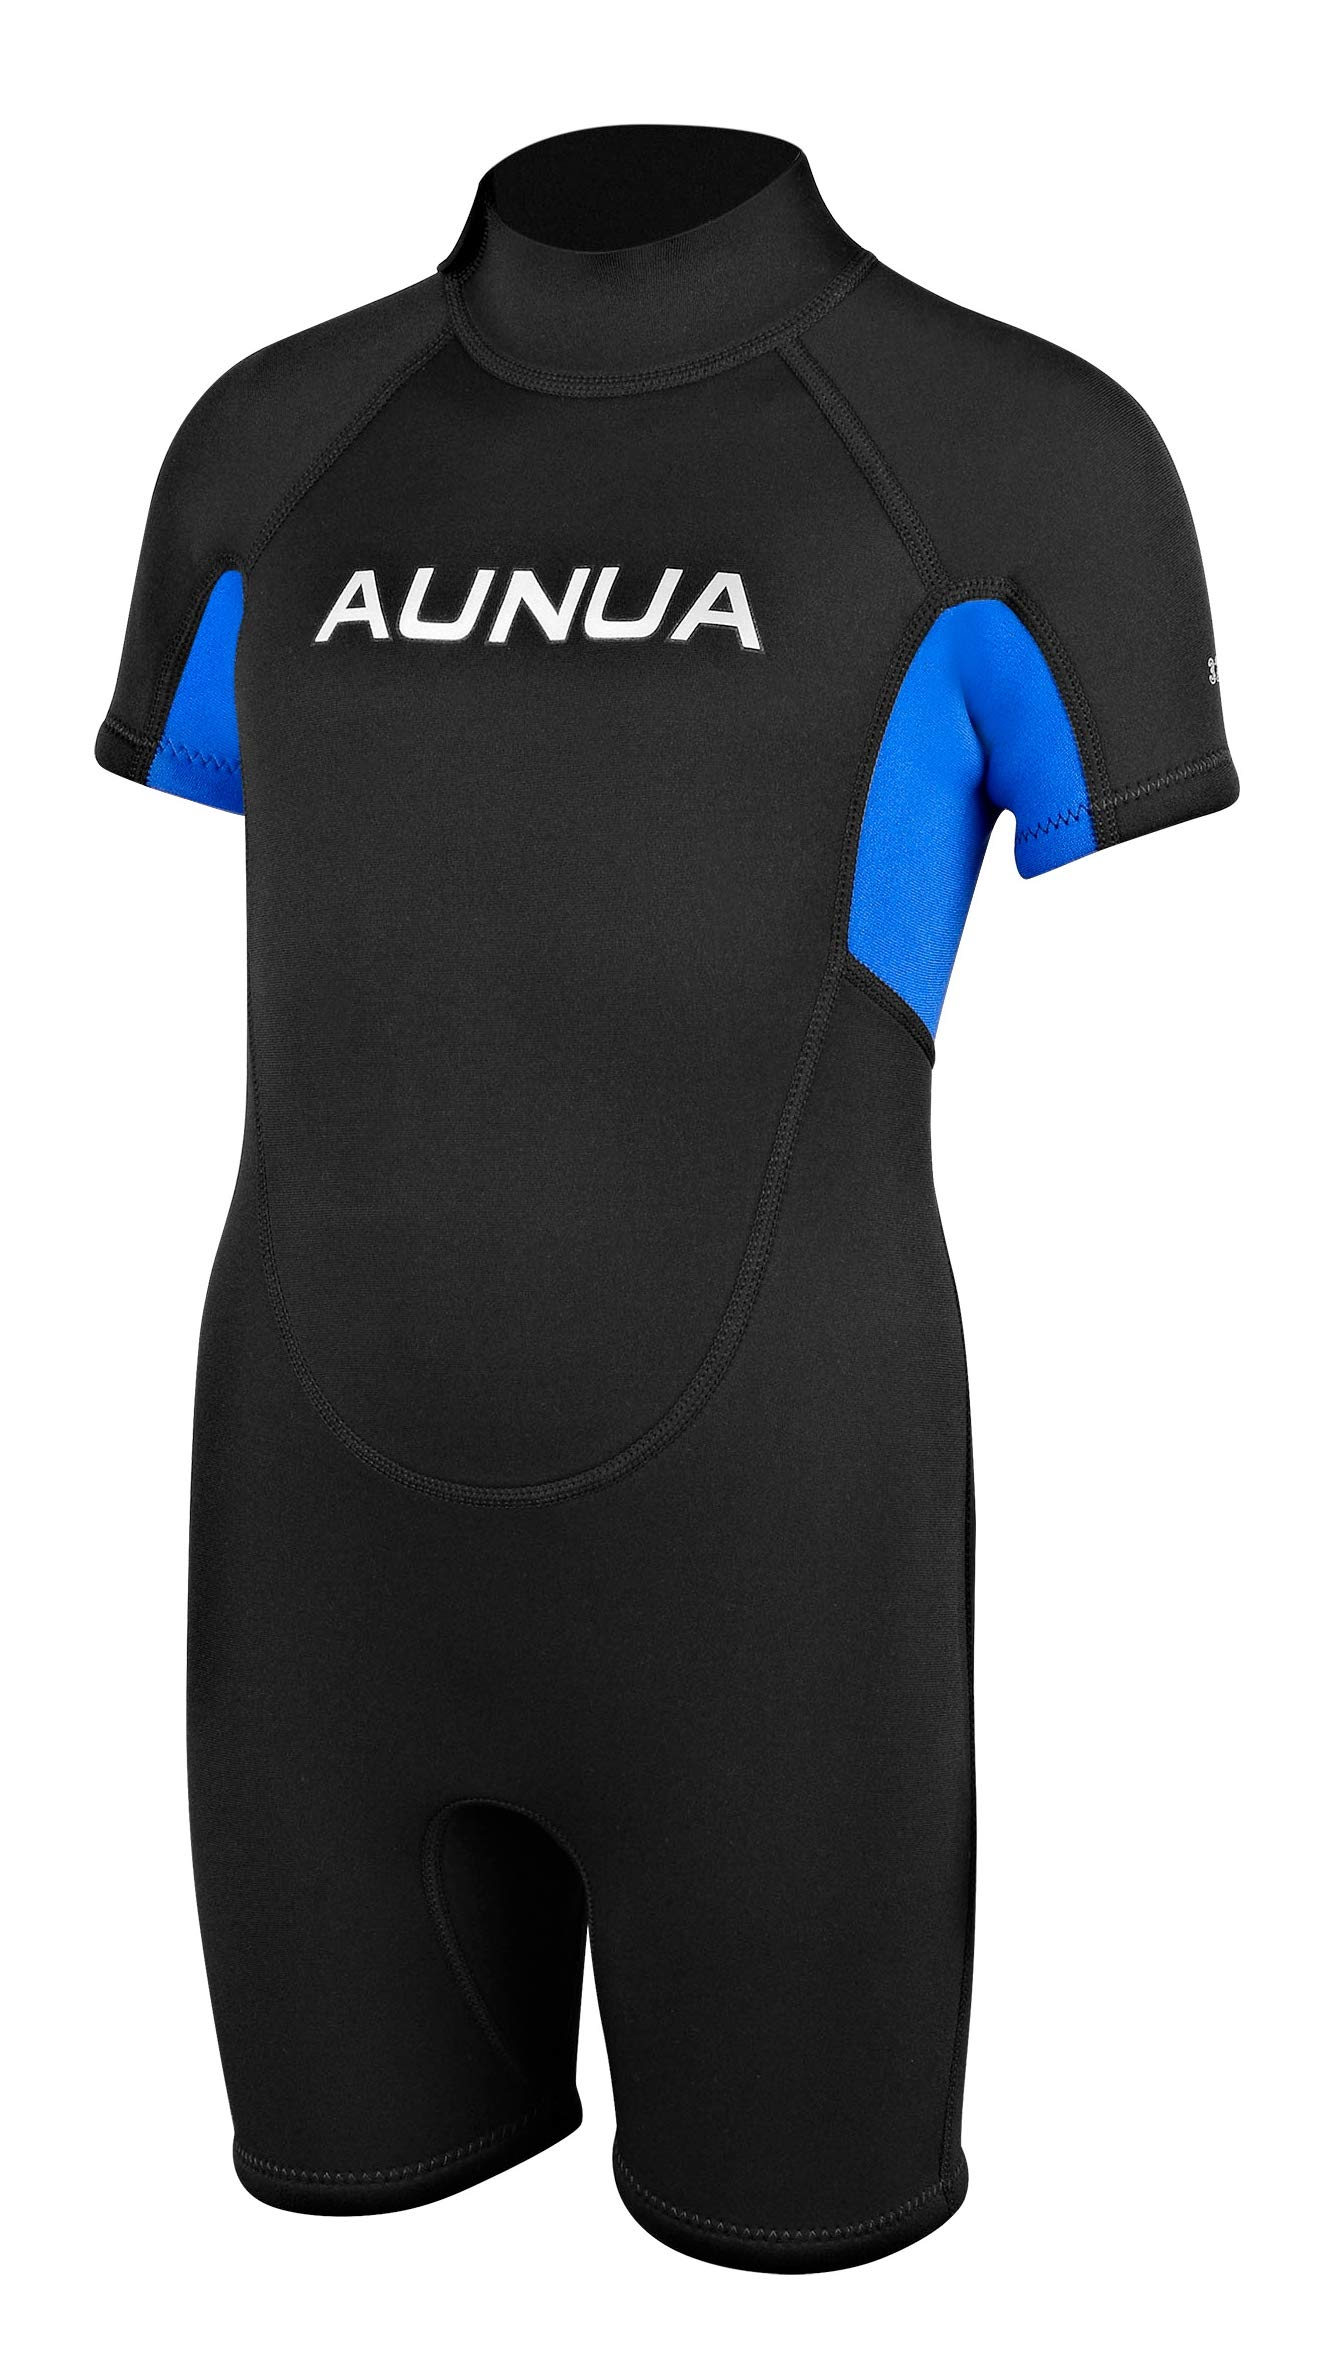 Aunua Children's 3mm Youth Swimming Suit Shorty Wetsuits Neoprene for Kids Keep Warm(7035 BlackBlue 4)